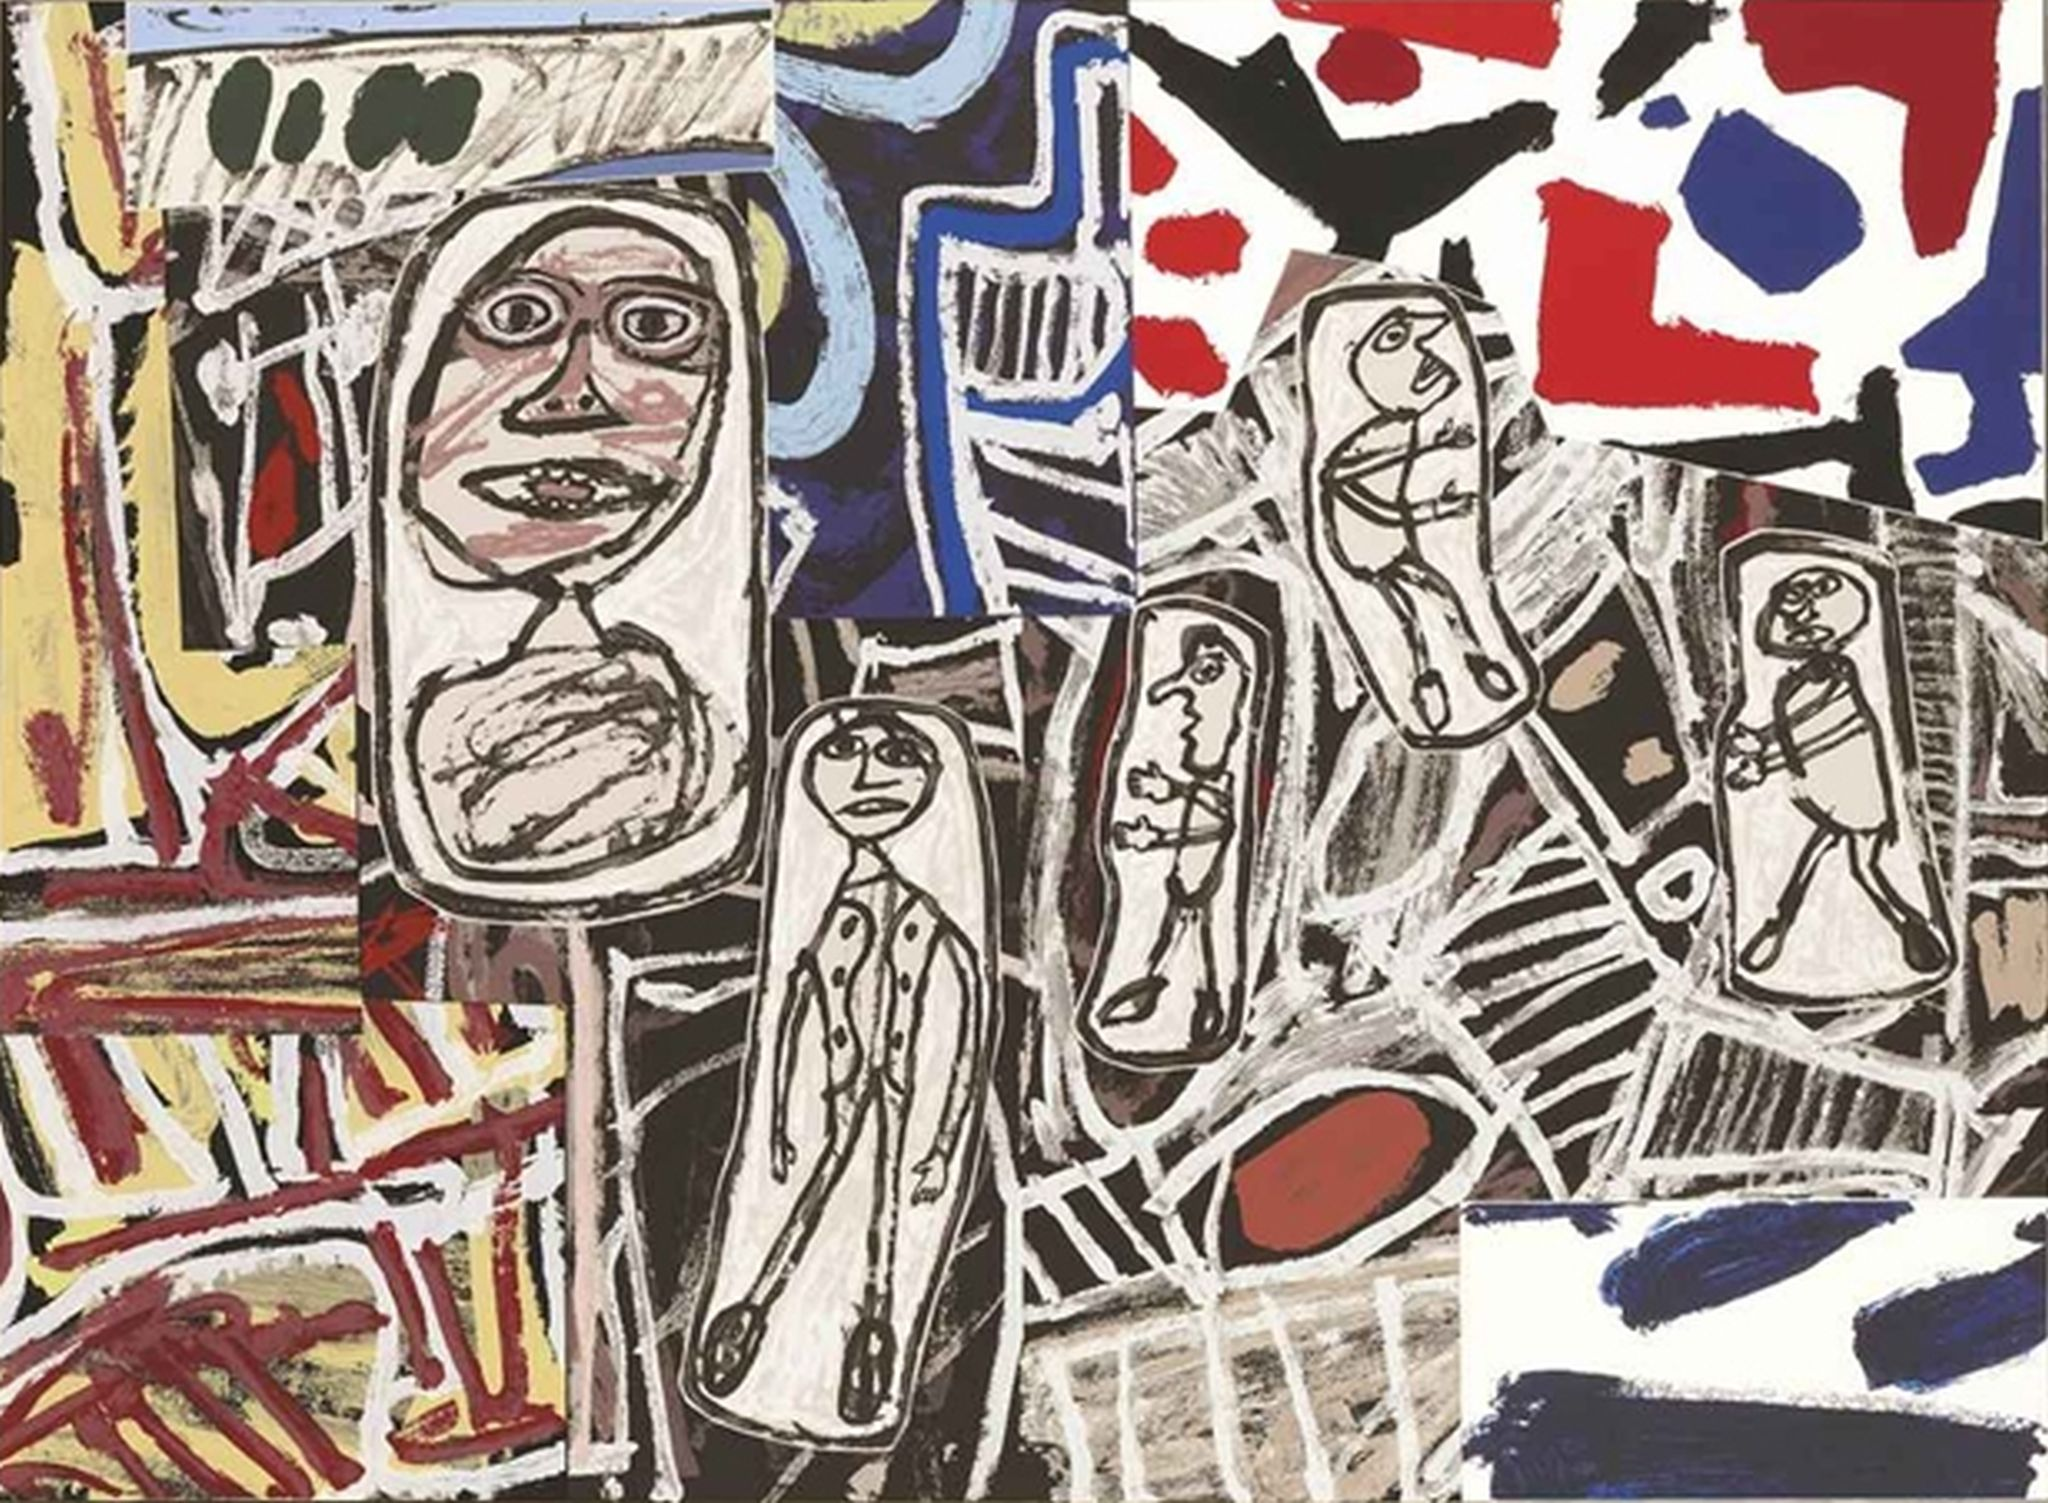 Dubuffet Faits Memorables.jpg